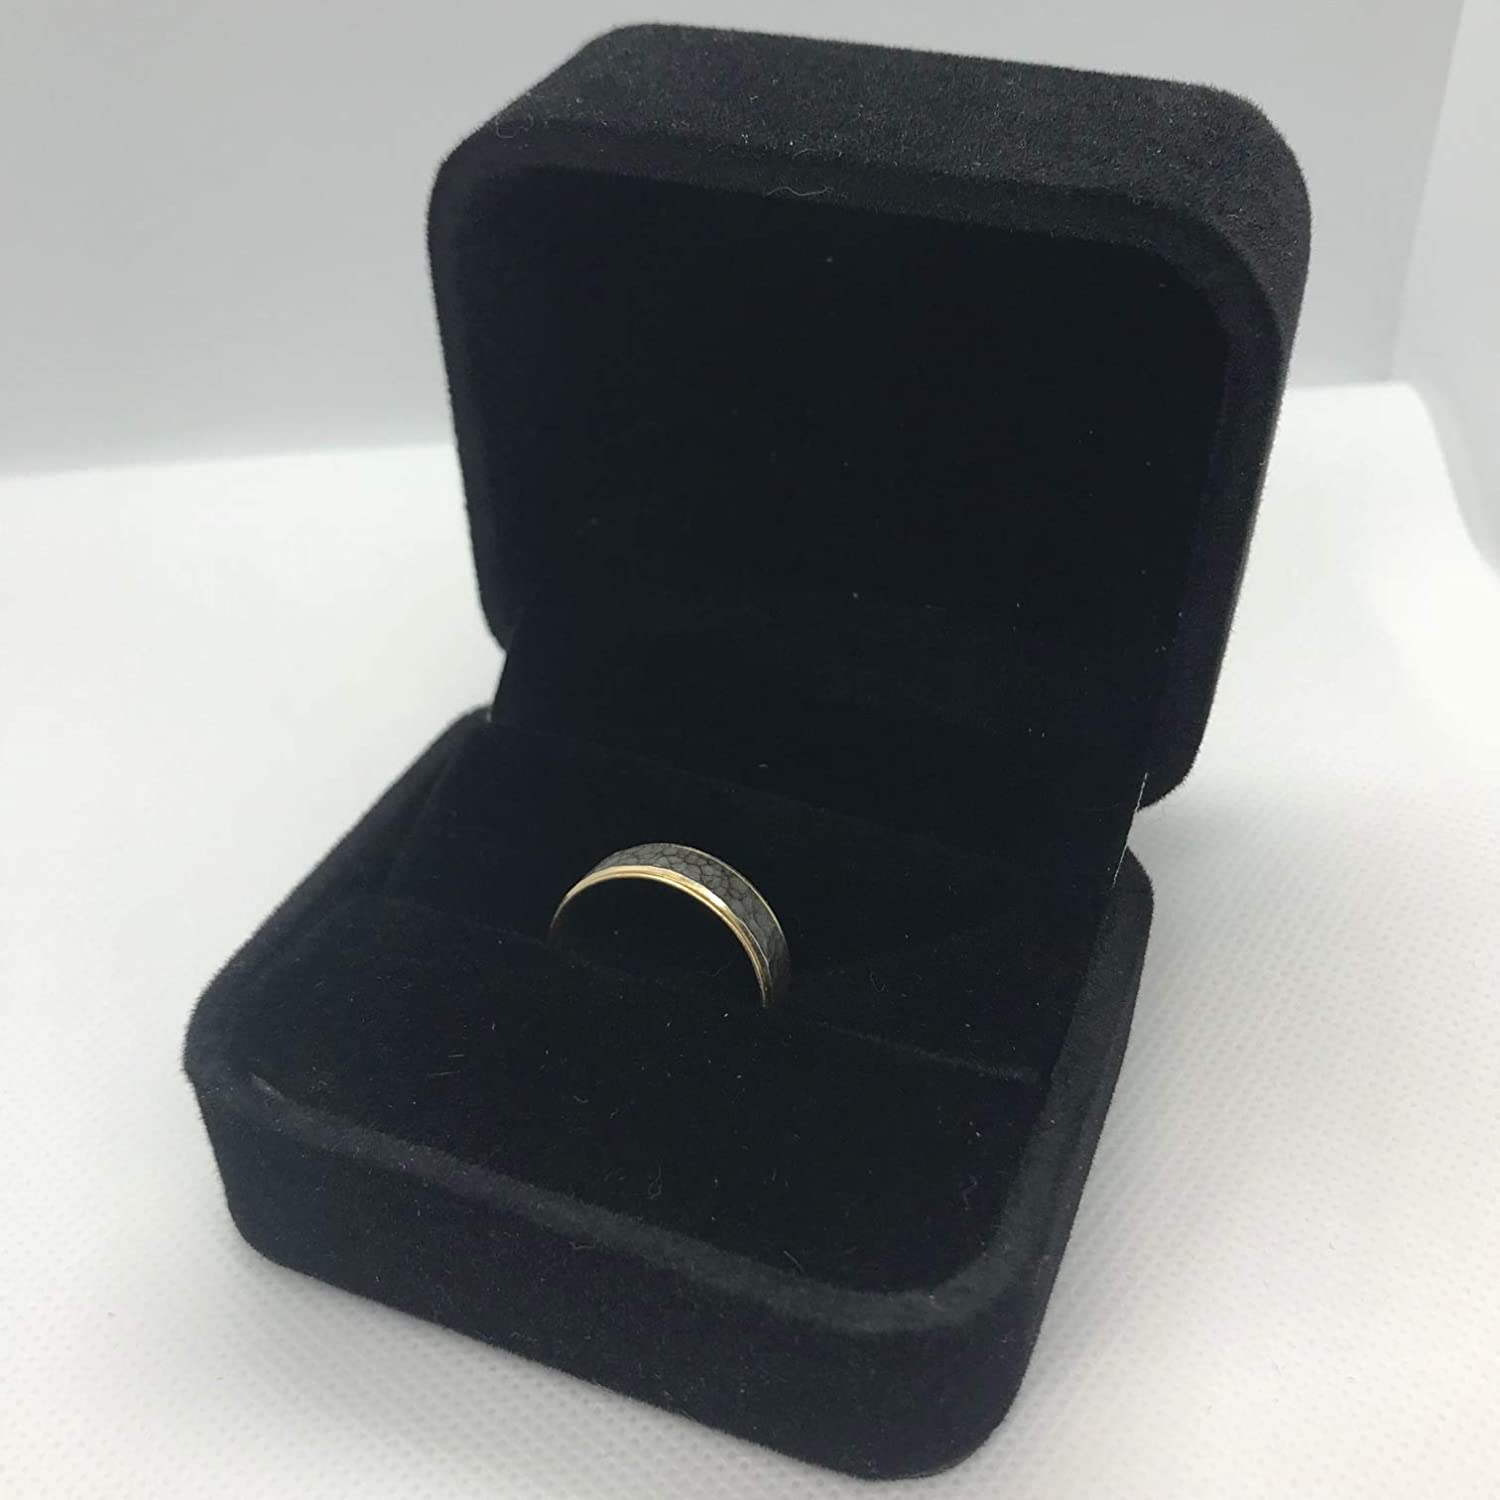 Black Velvet Ring BOC Ltd.